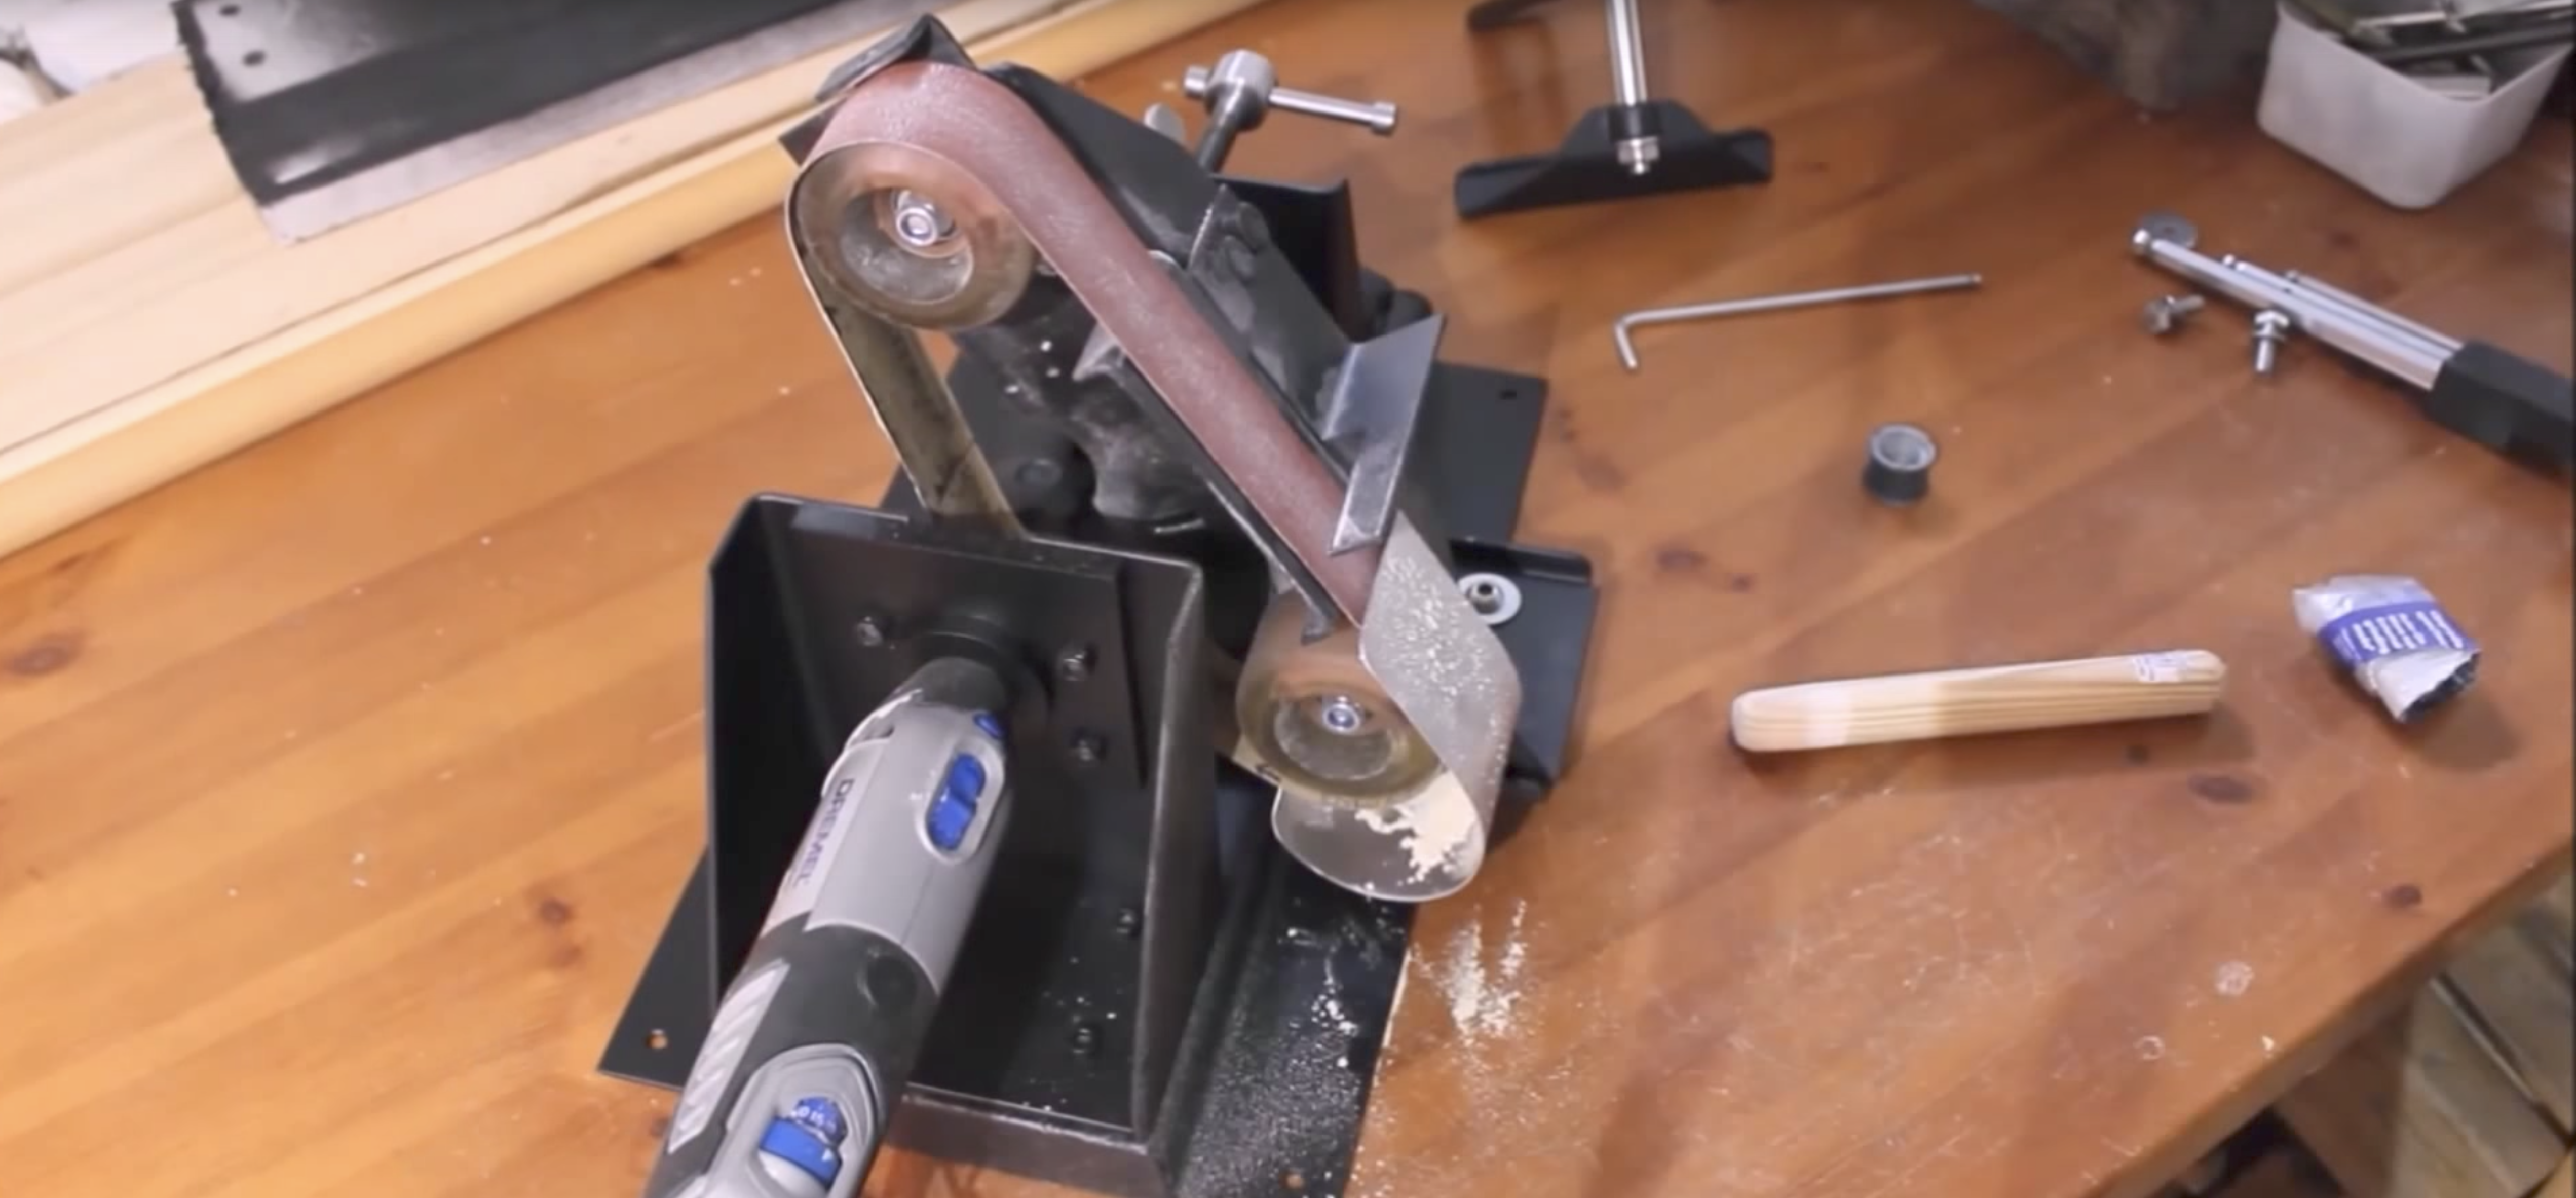 It's A Wall-Mounted Dremel Workstation! | Hackaday